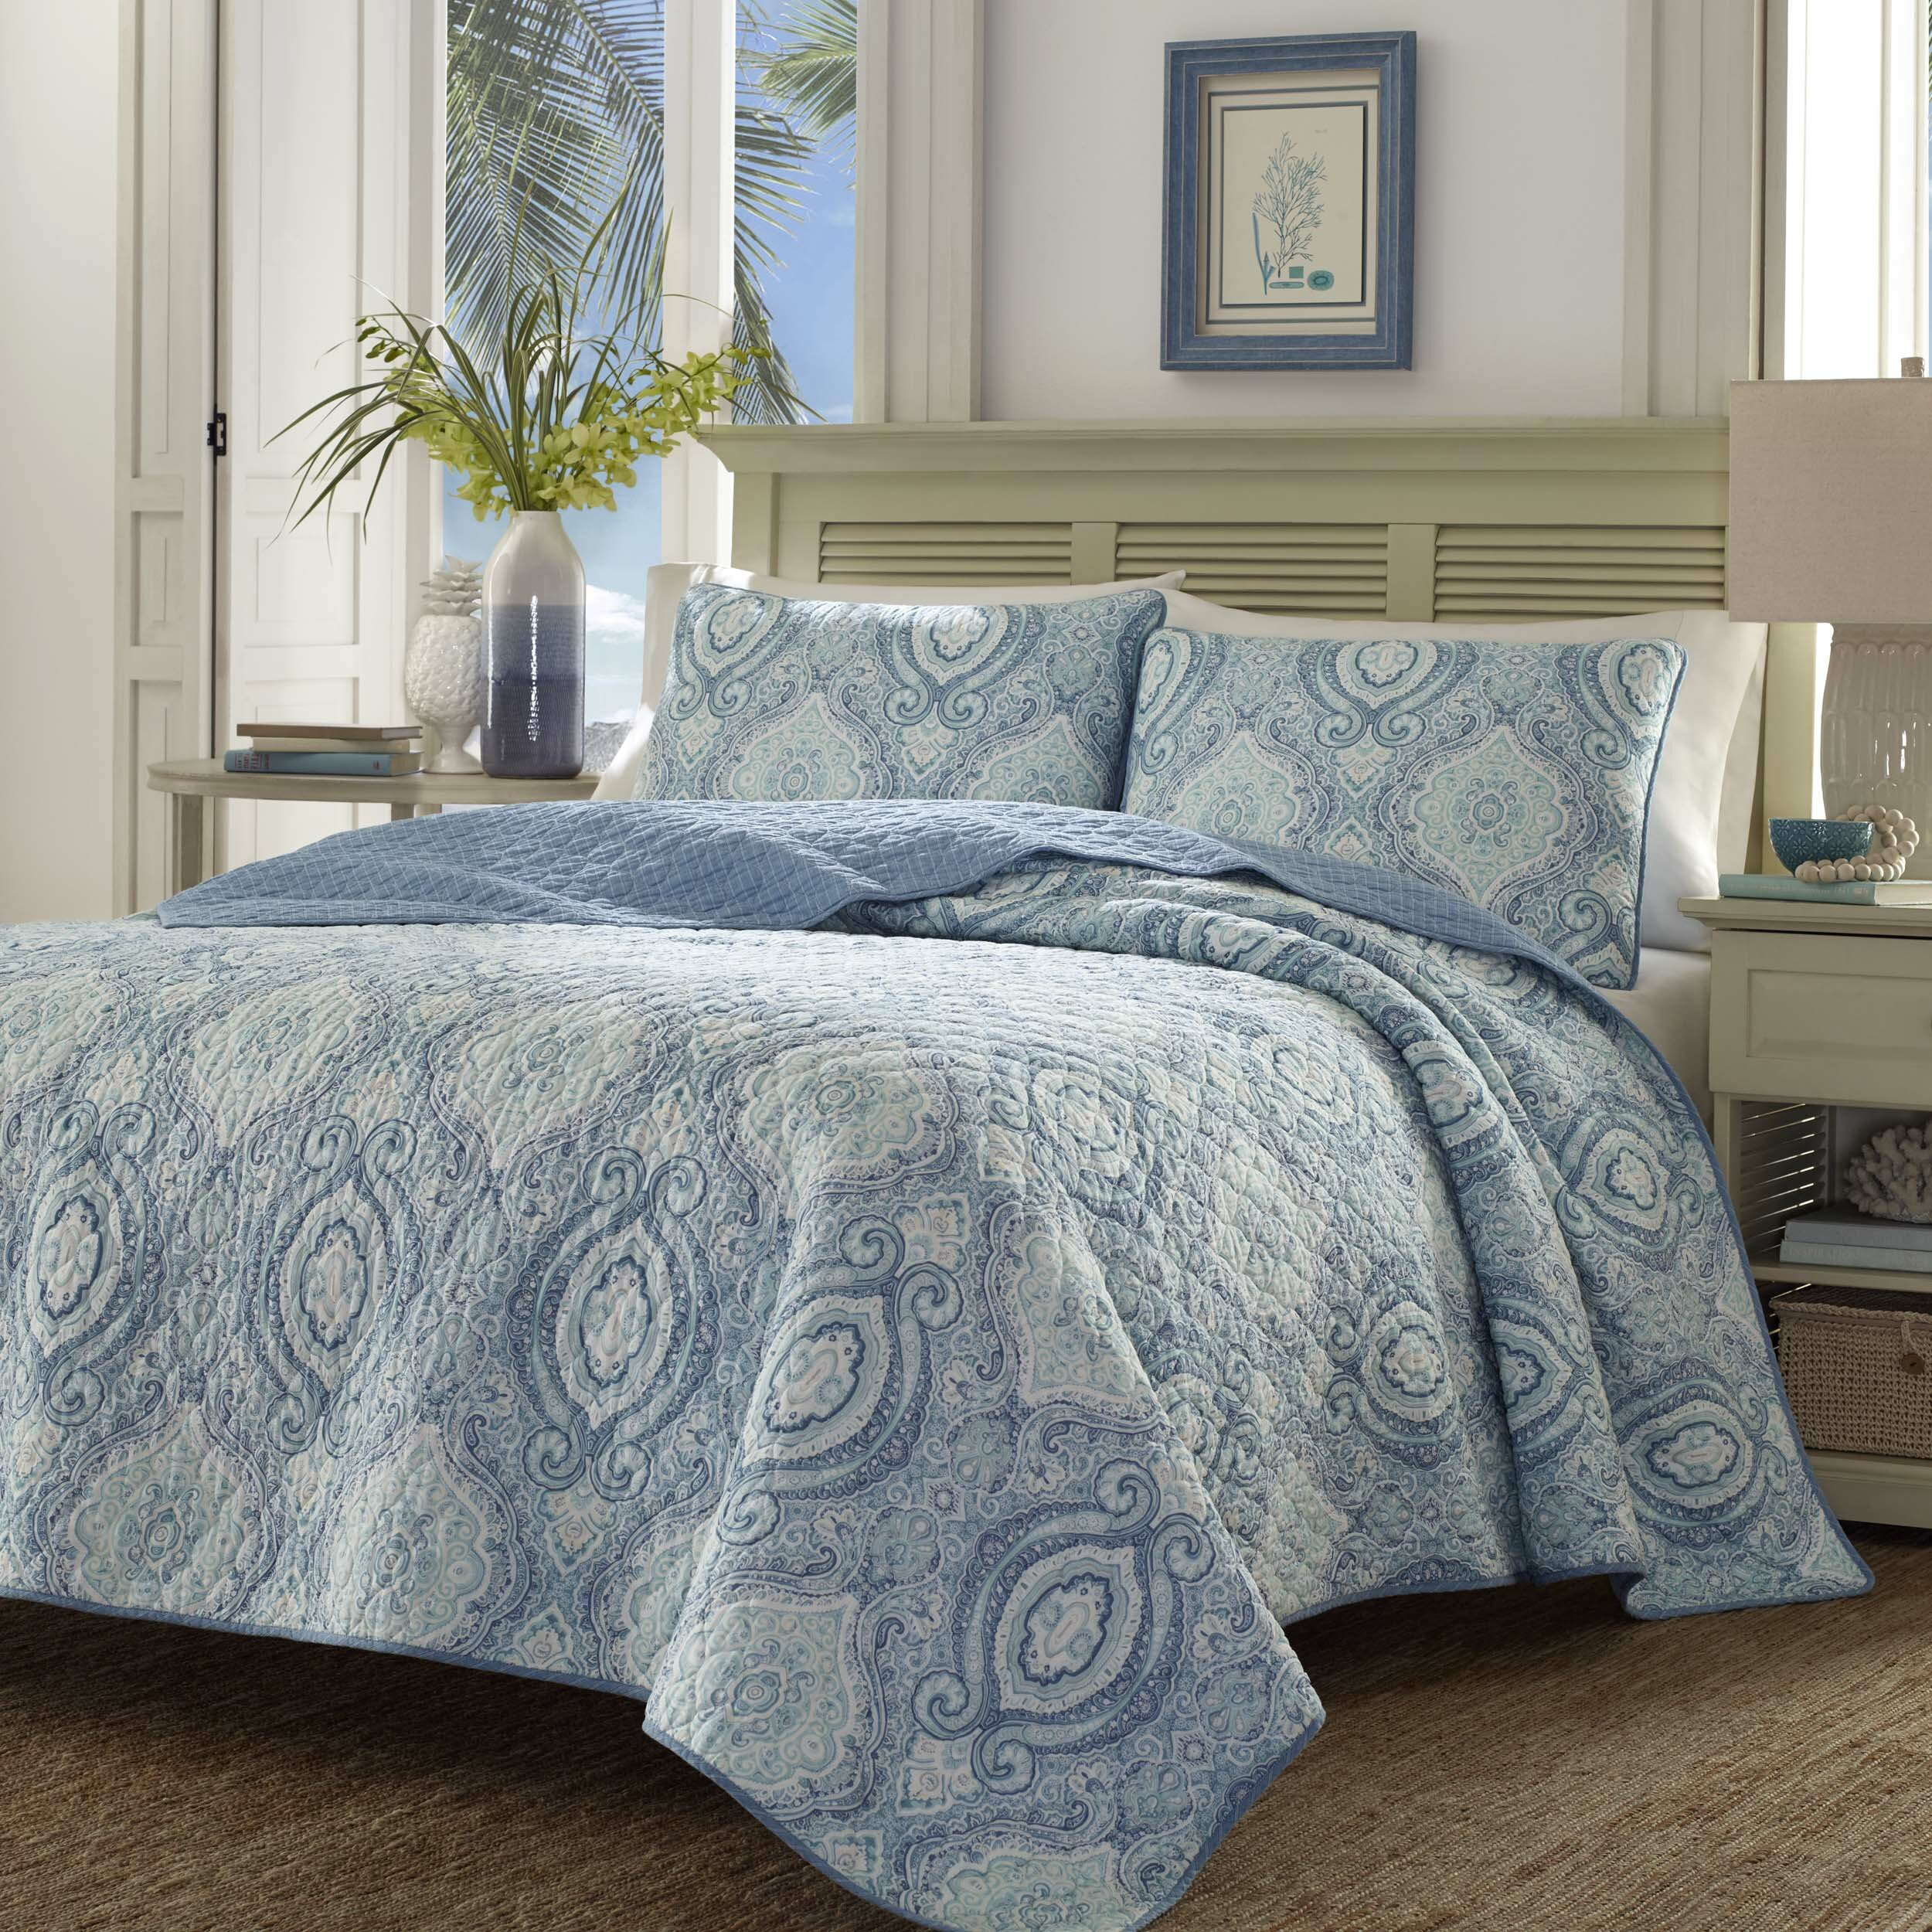 bedding tommy overstock bath dune today set king sale bahama comforter on quilt free chevron piece shipping product